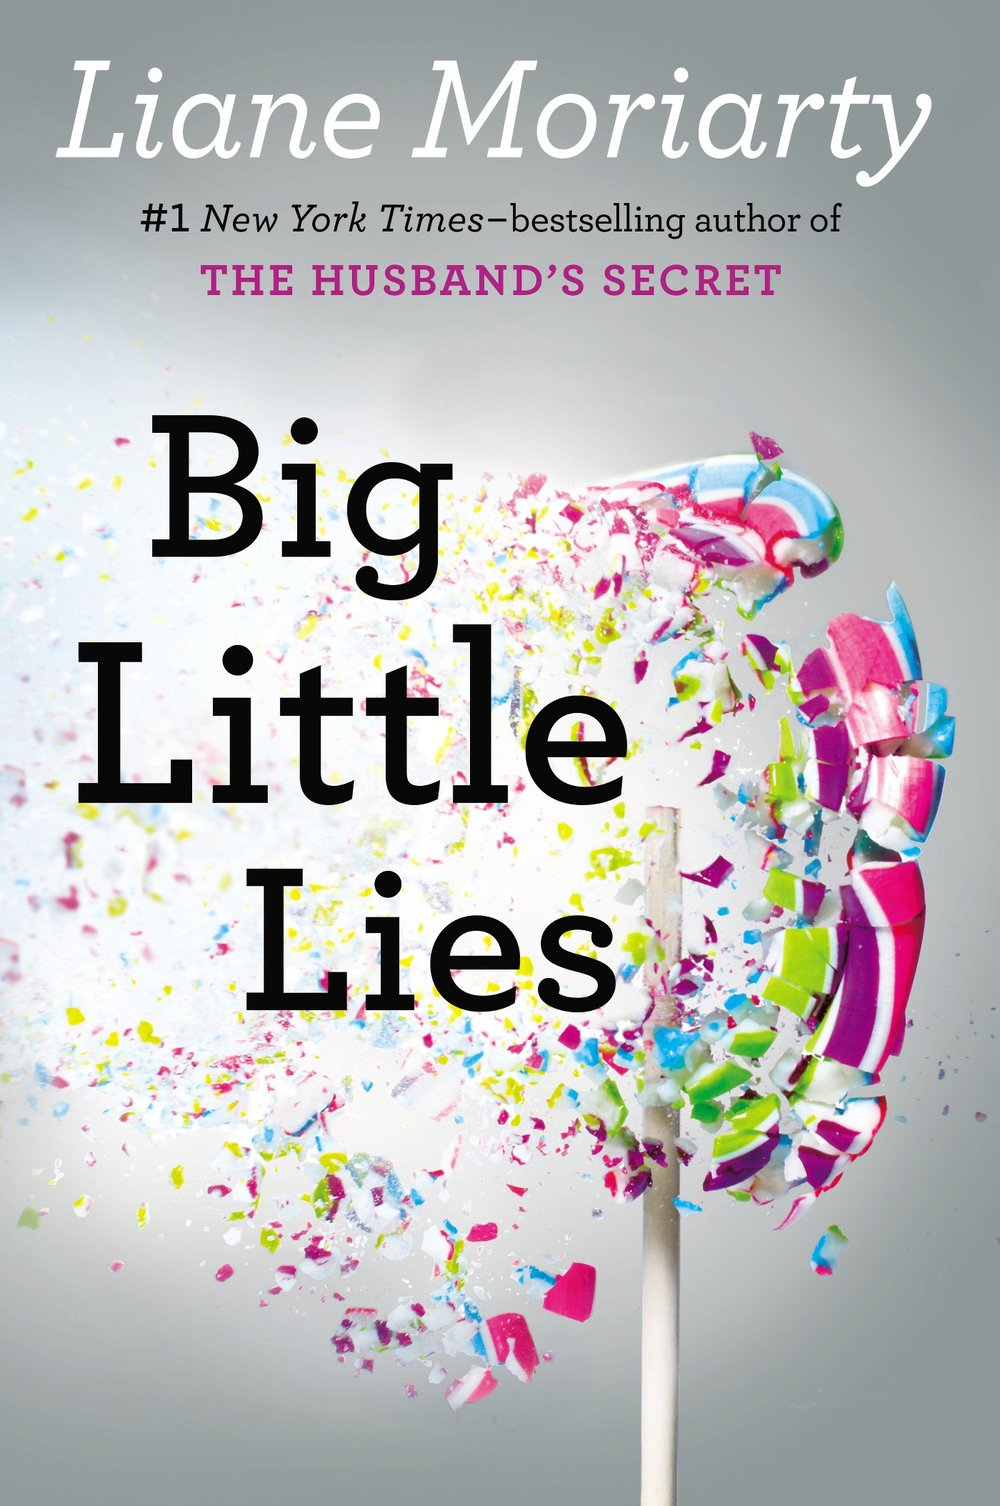 5 Books to Read that Inspired Great Television Series | 3) Big Little Lies (the book)